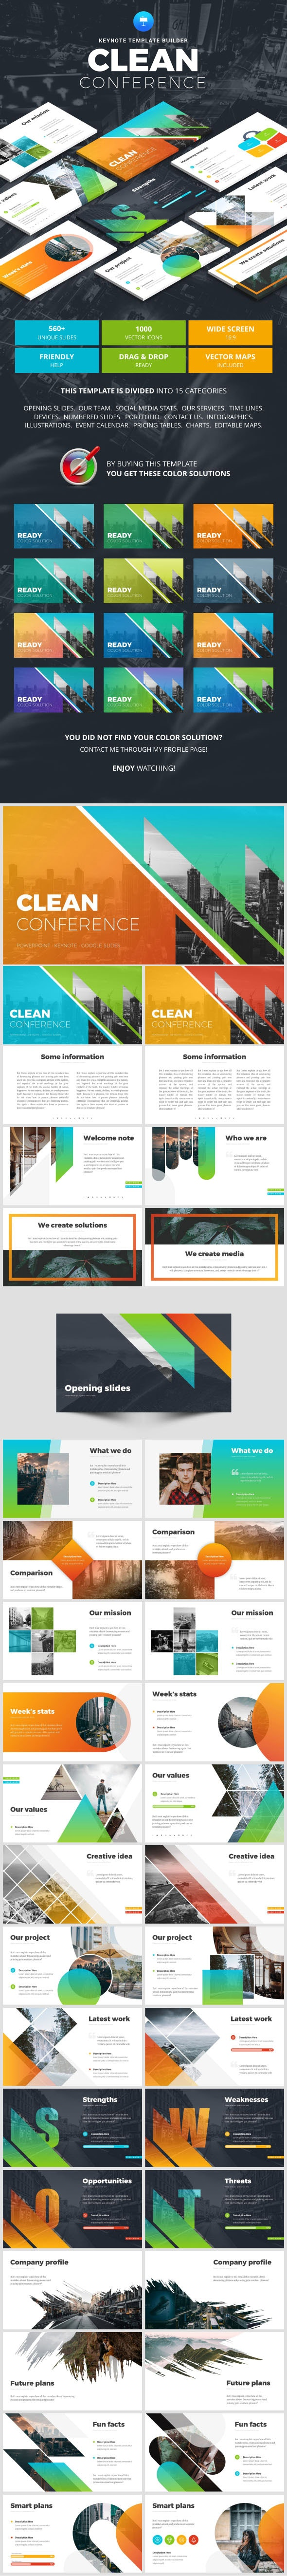 Clean Conference Keynote - Business Keynote Templates